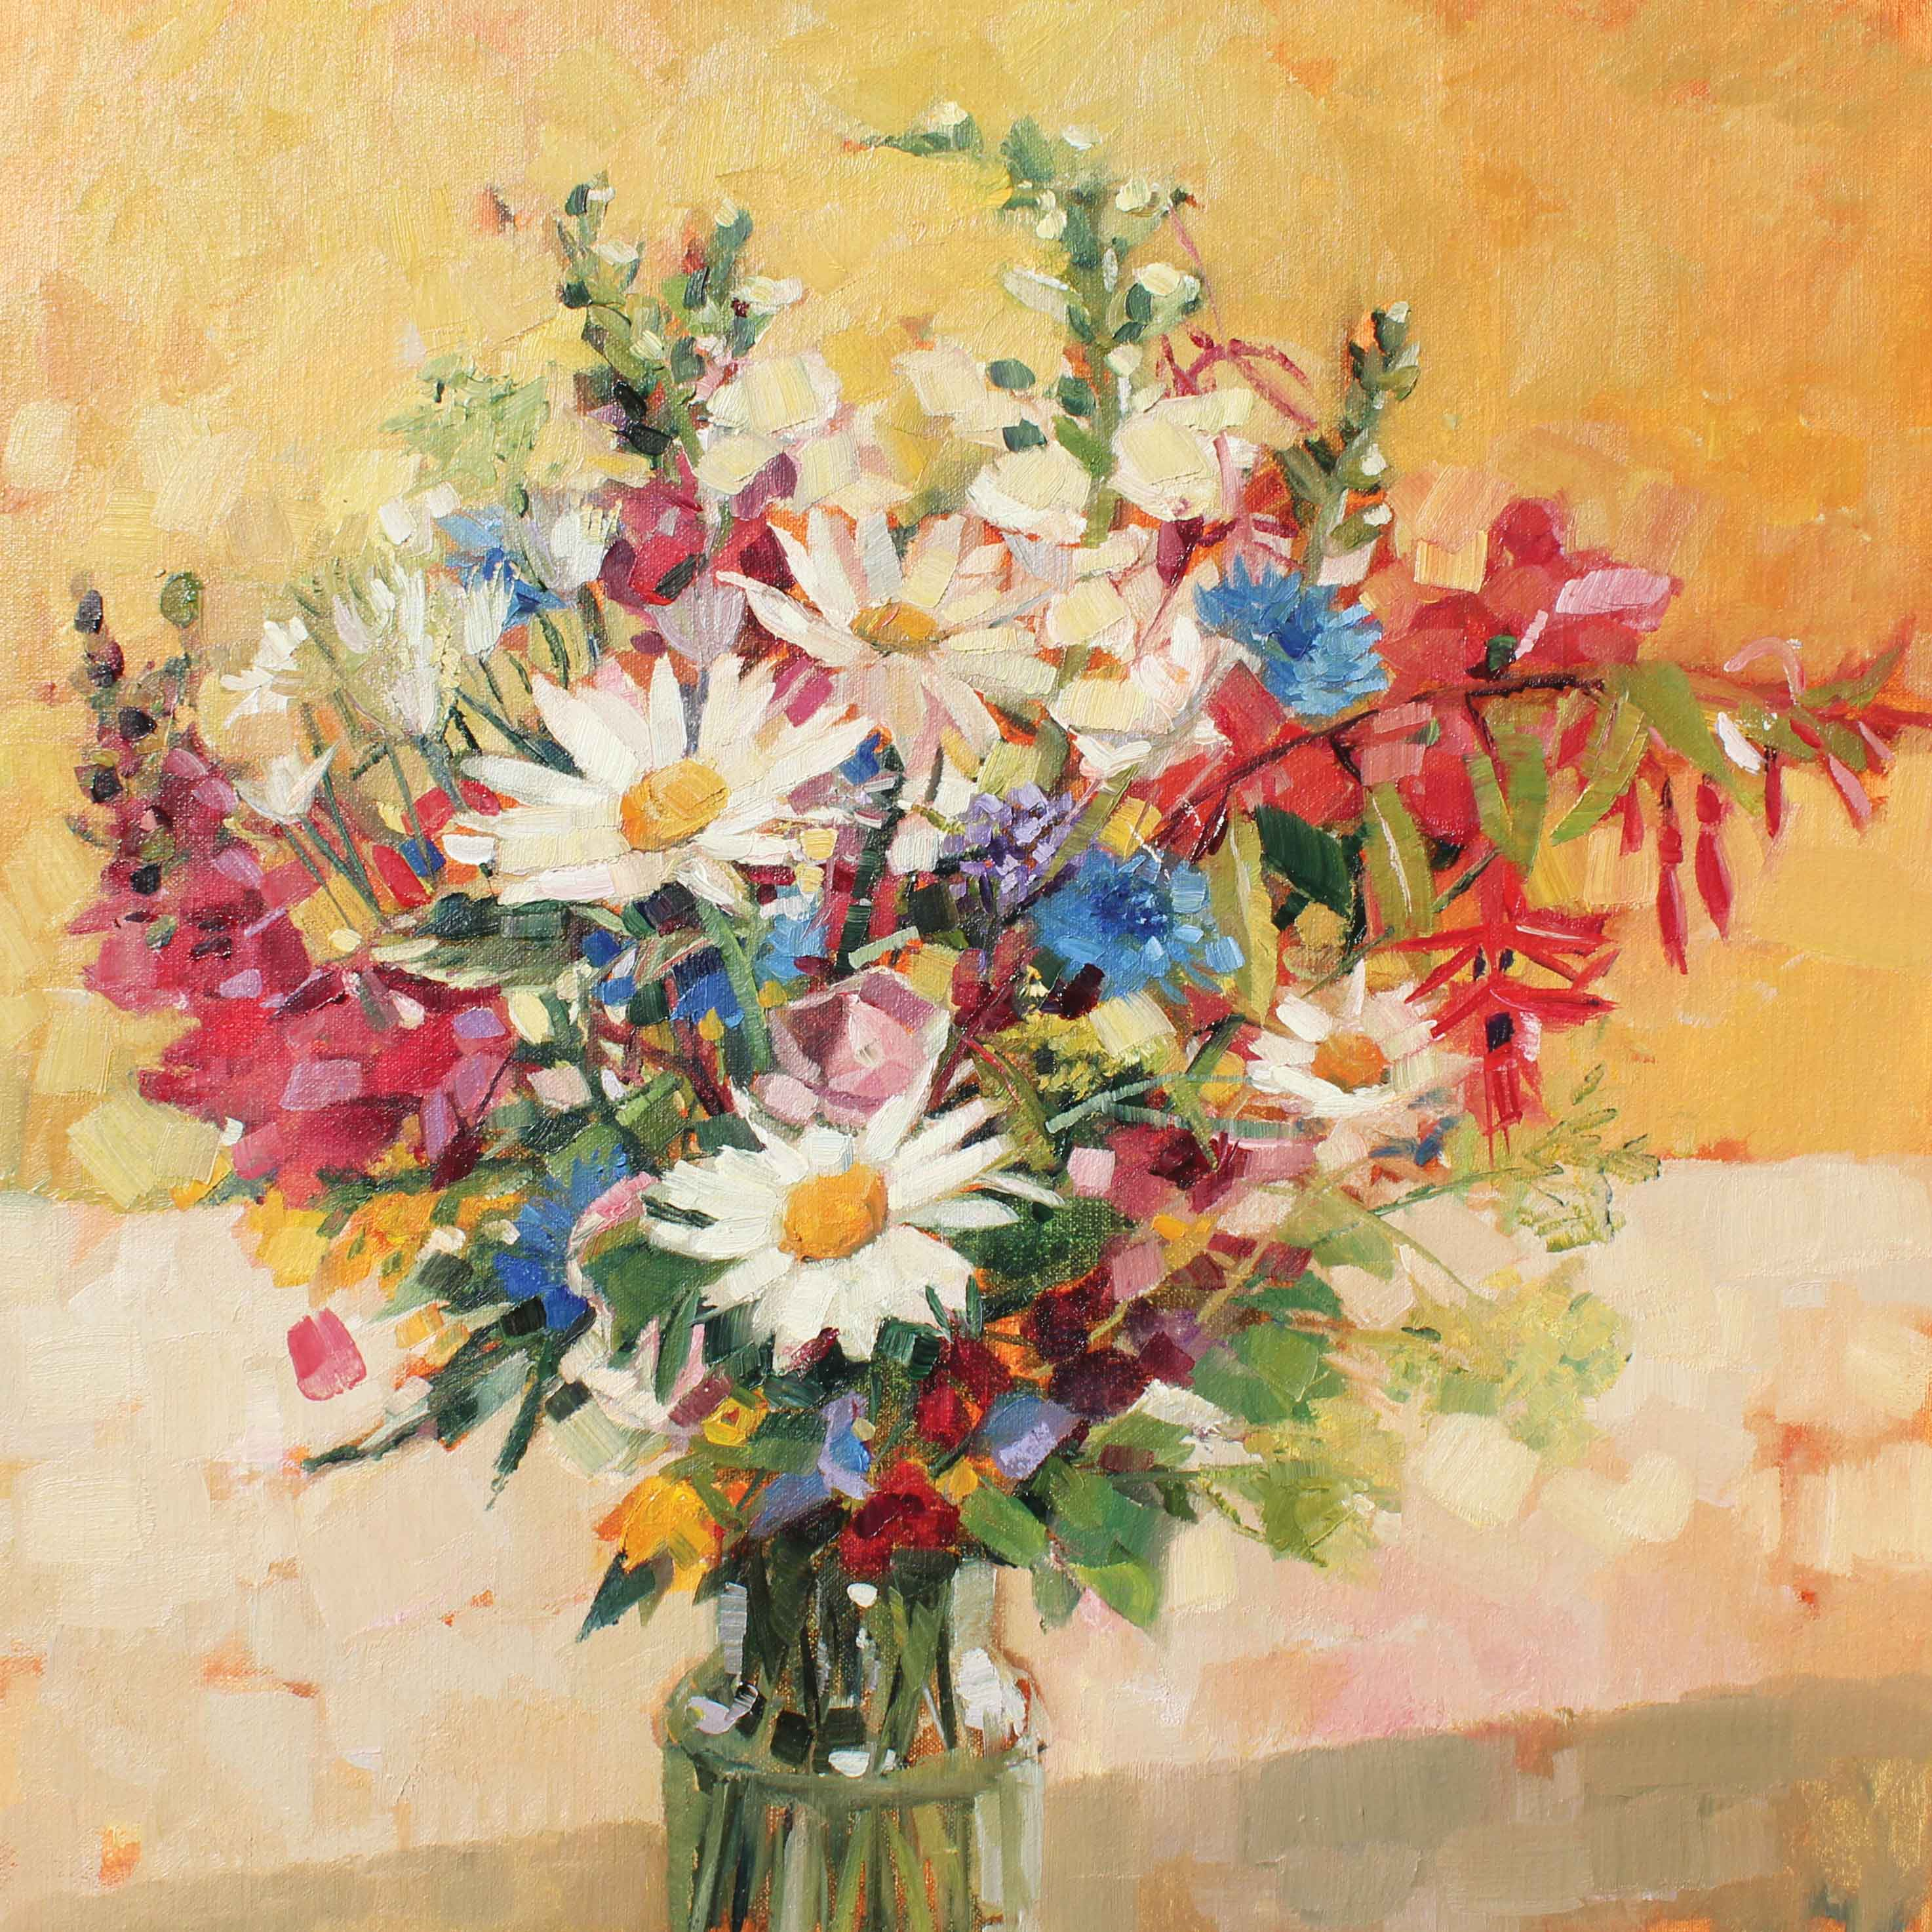 Art Greeting Card by Anne-Marie Butlin, Oilpainting, Garden flowers in vase